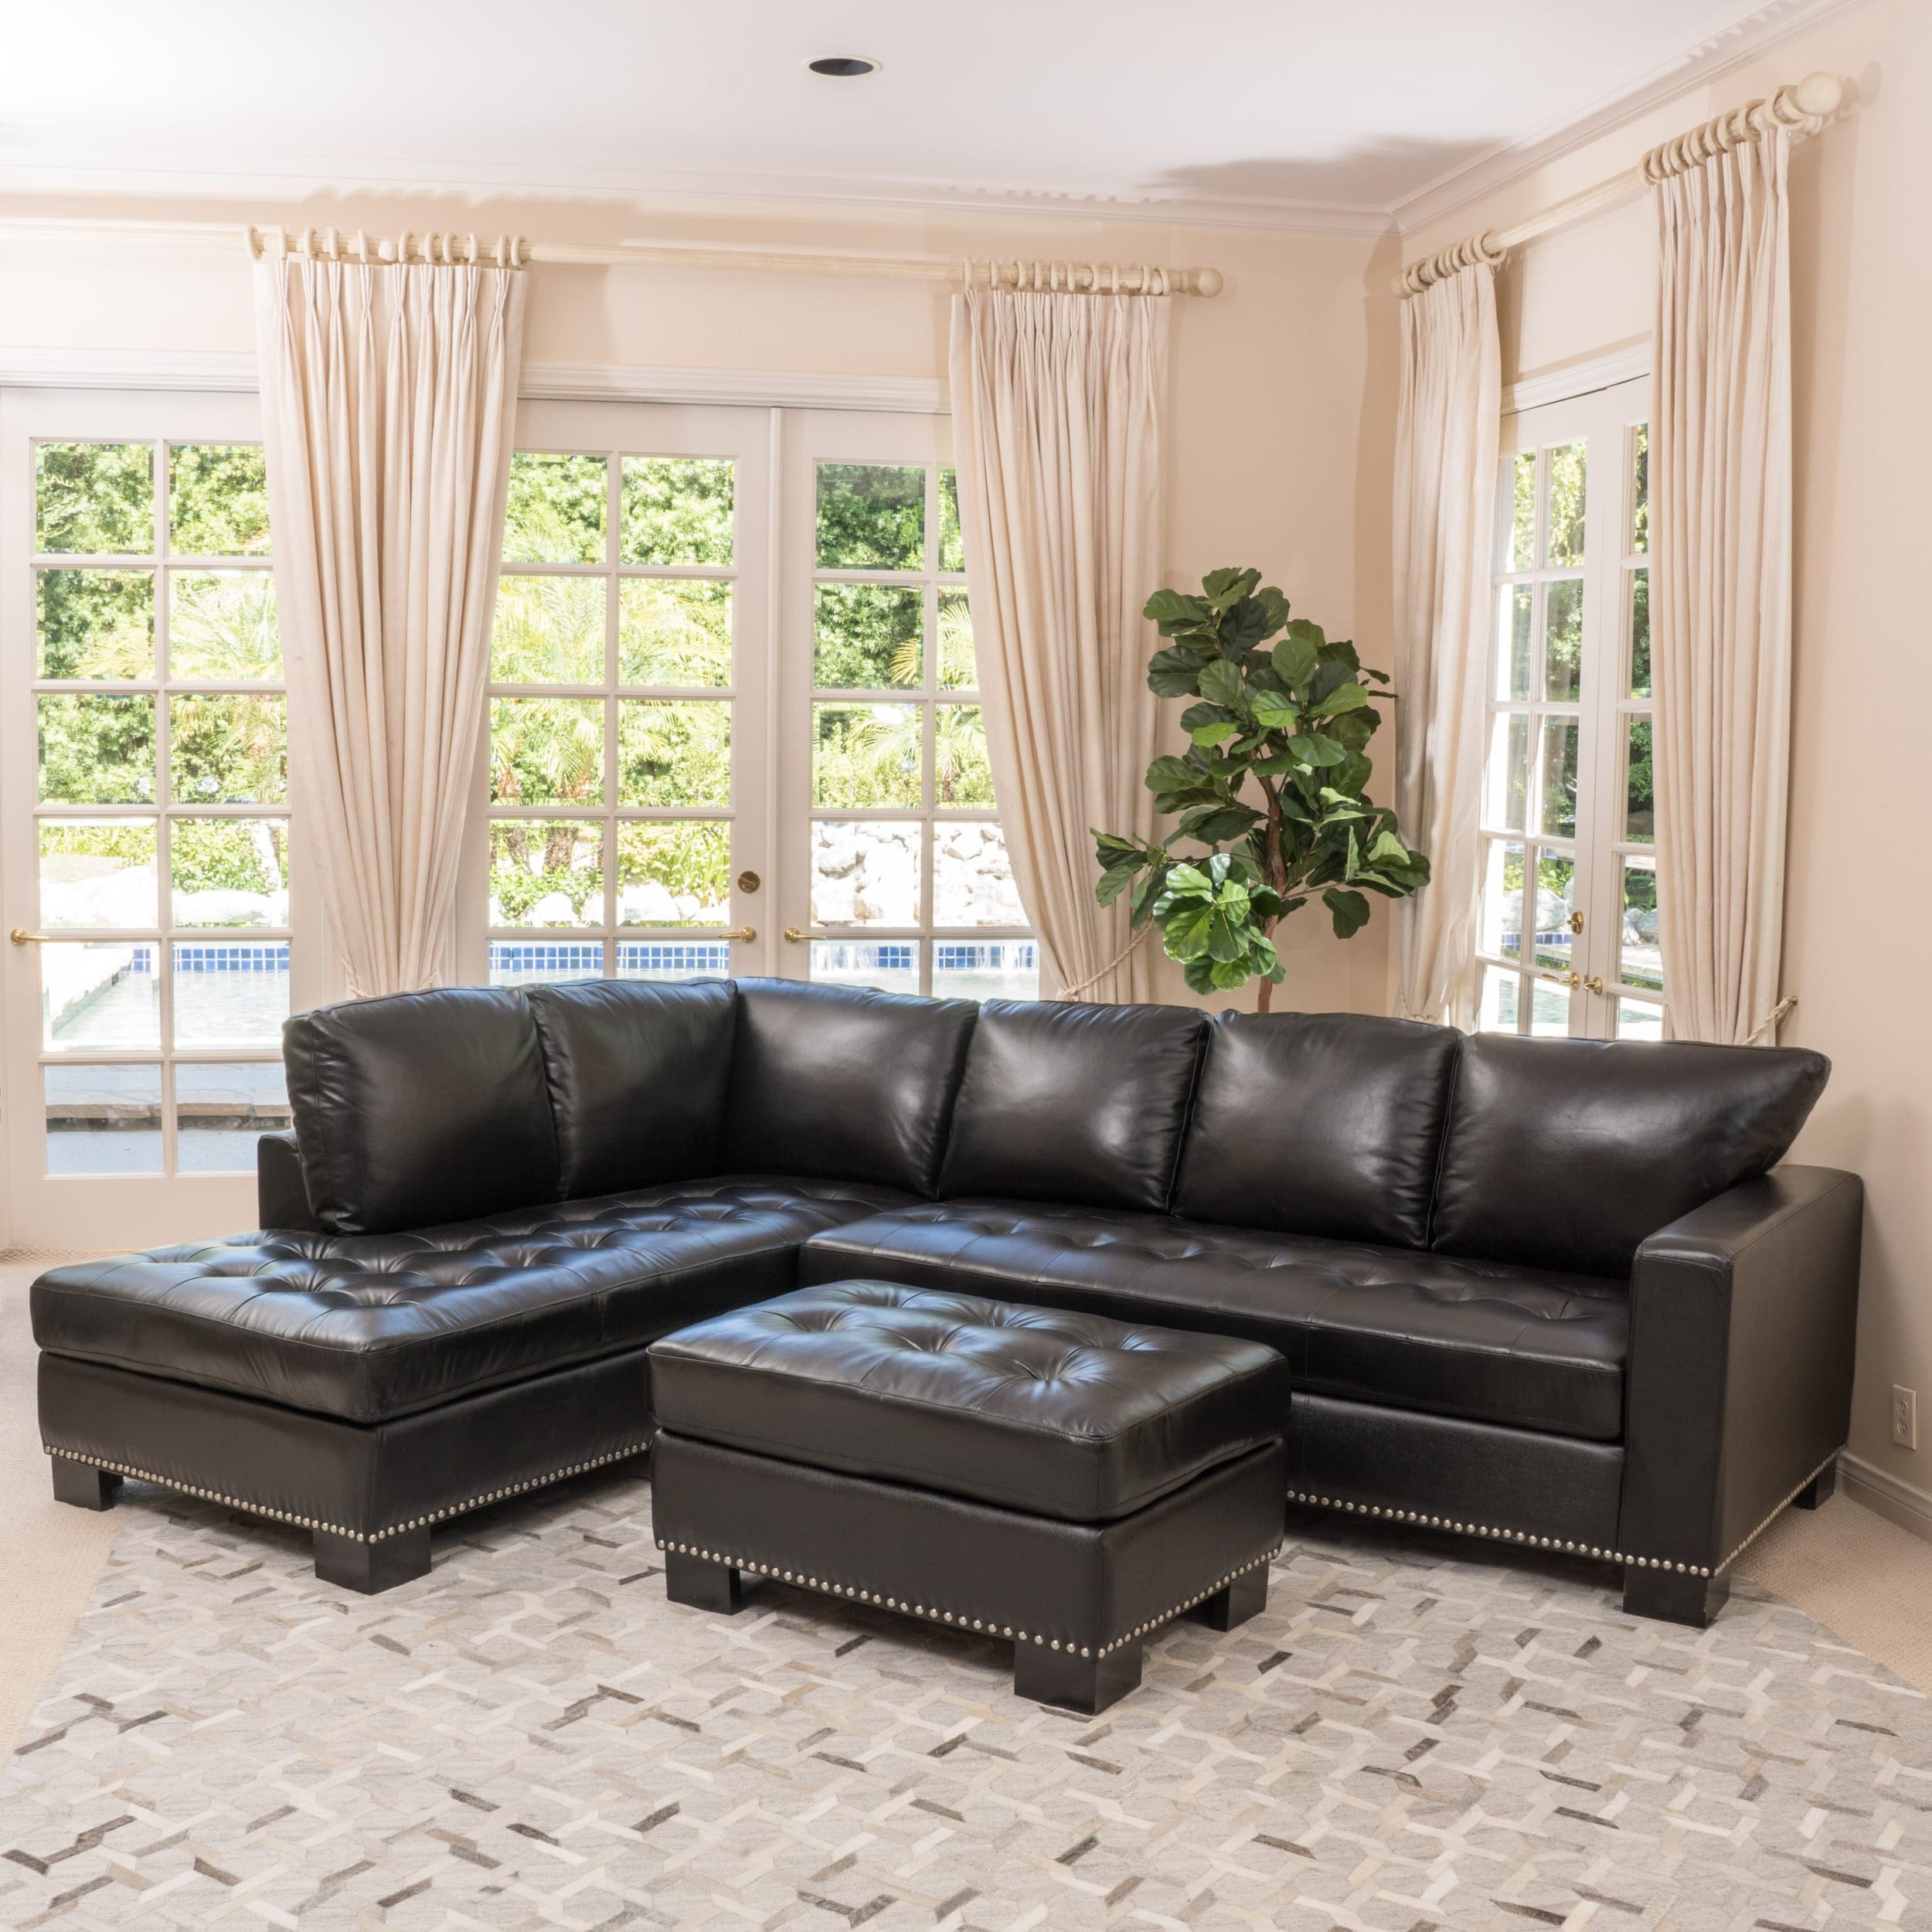 Lincoln Left Facing 3 Piece Leather Sectional Sofa Set By Christopher Knight Home On Free Shipping Today 12300233